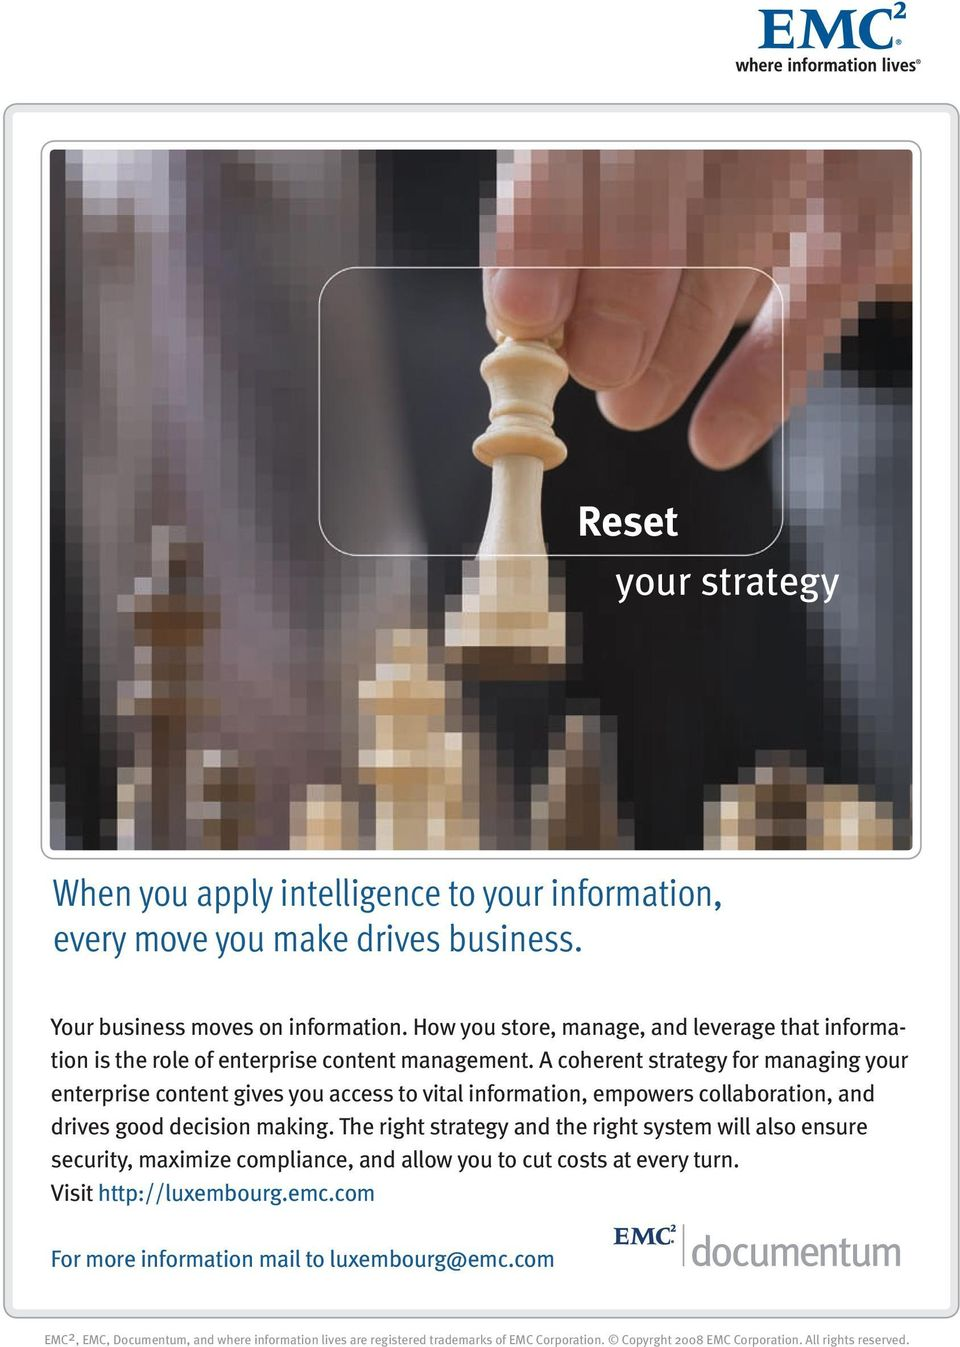 A coherent strategy for managing your enterprise content gives you access to vital information, empowers collaboration, and drives good decision making.